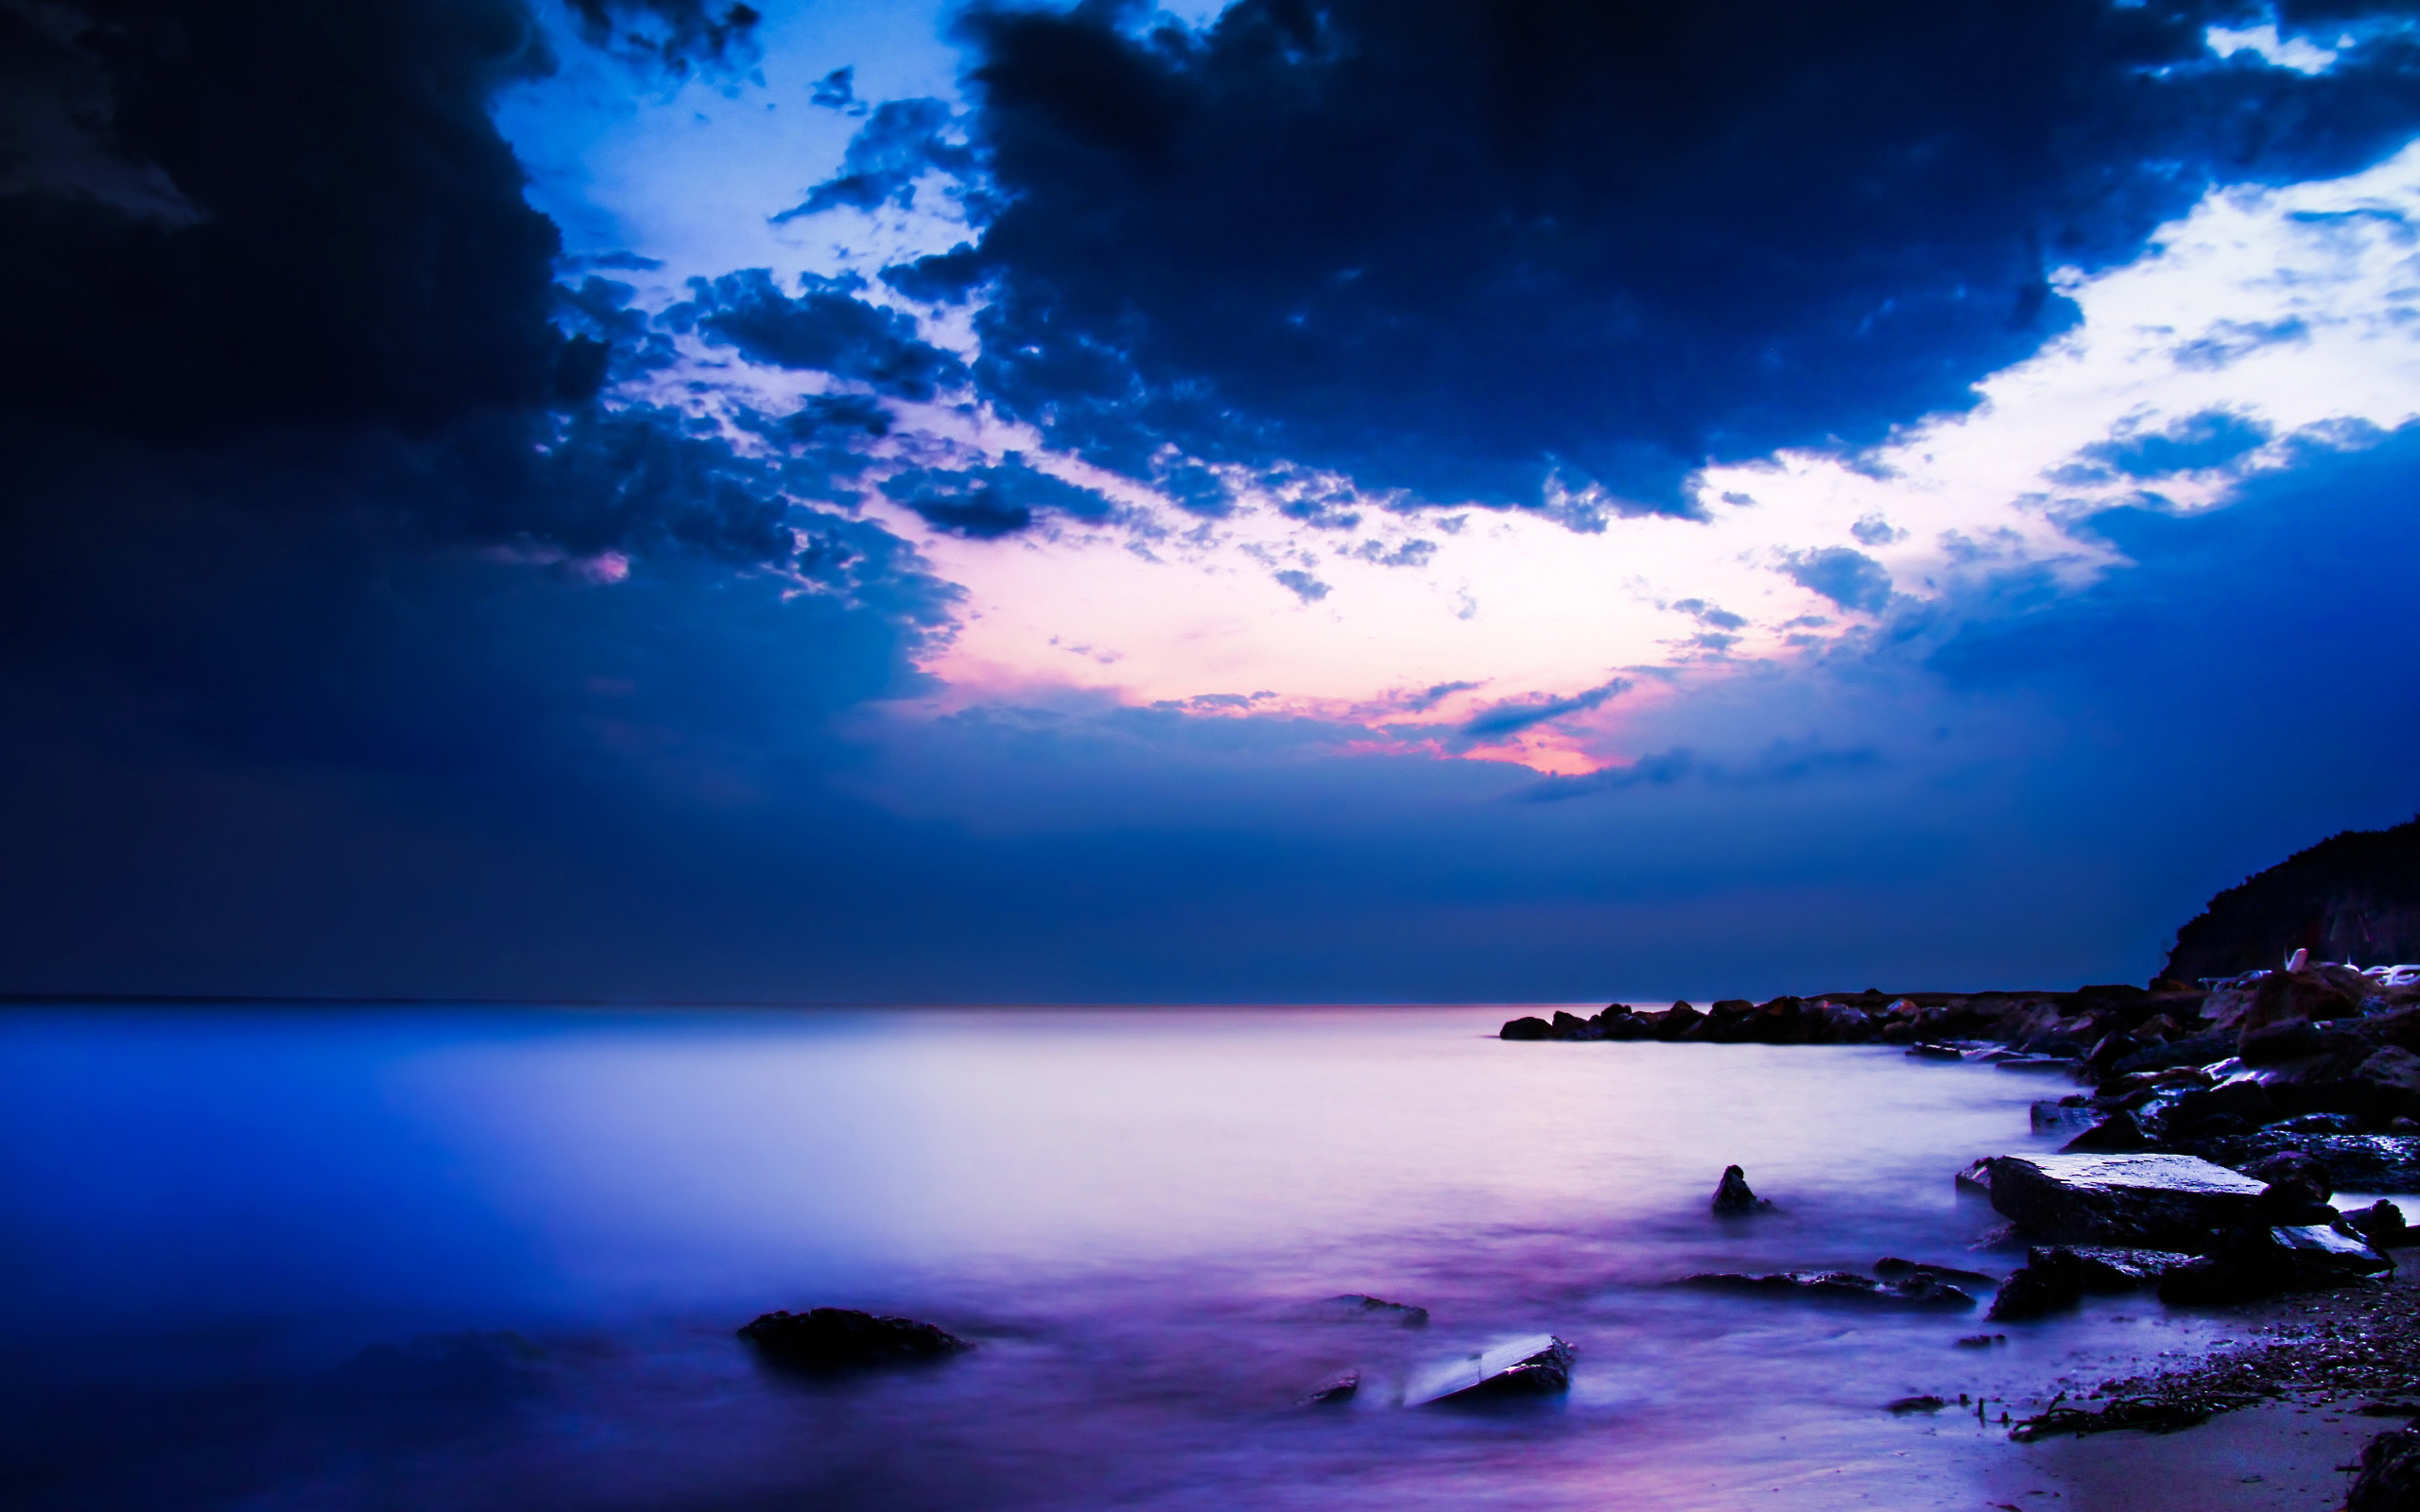 … backgrounds for hd ocean backgrounds www 8backgrounds com …